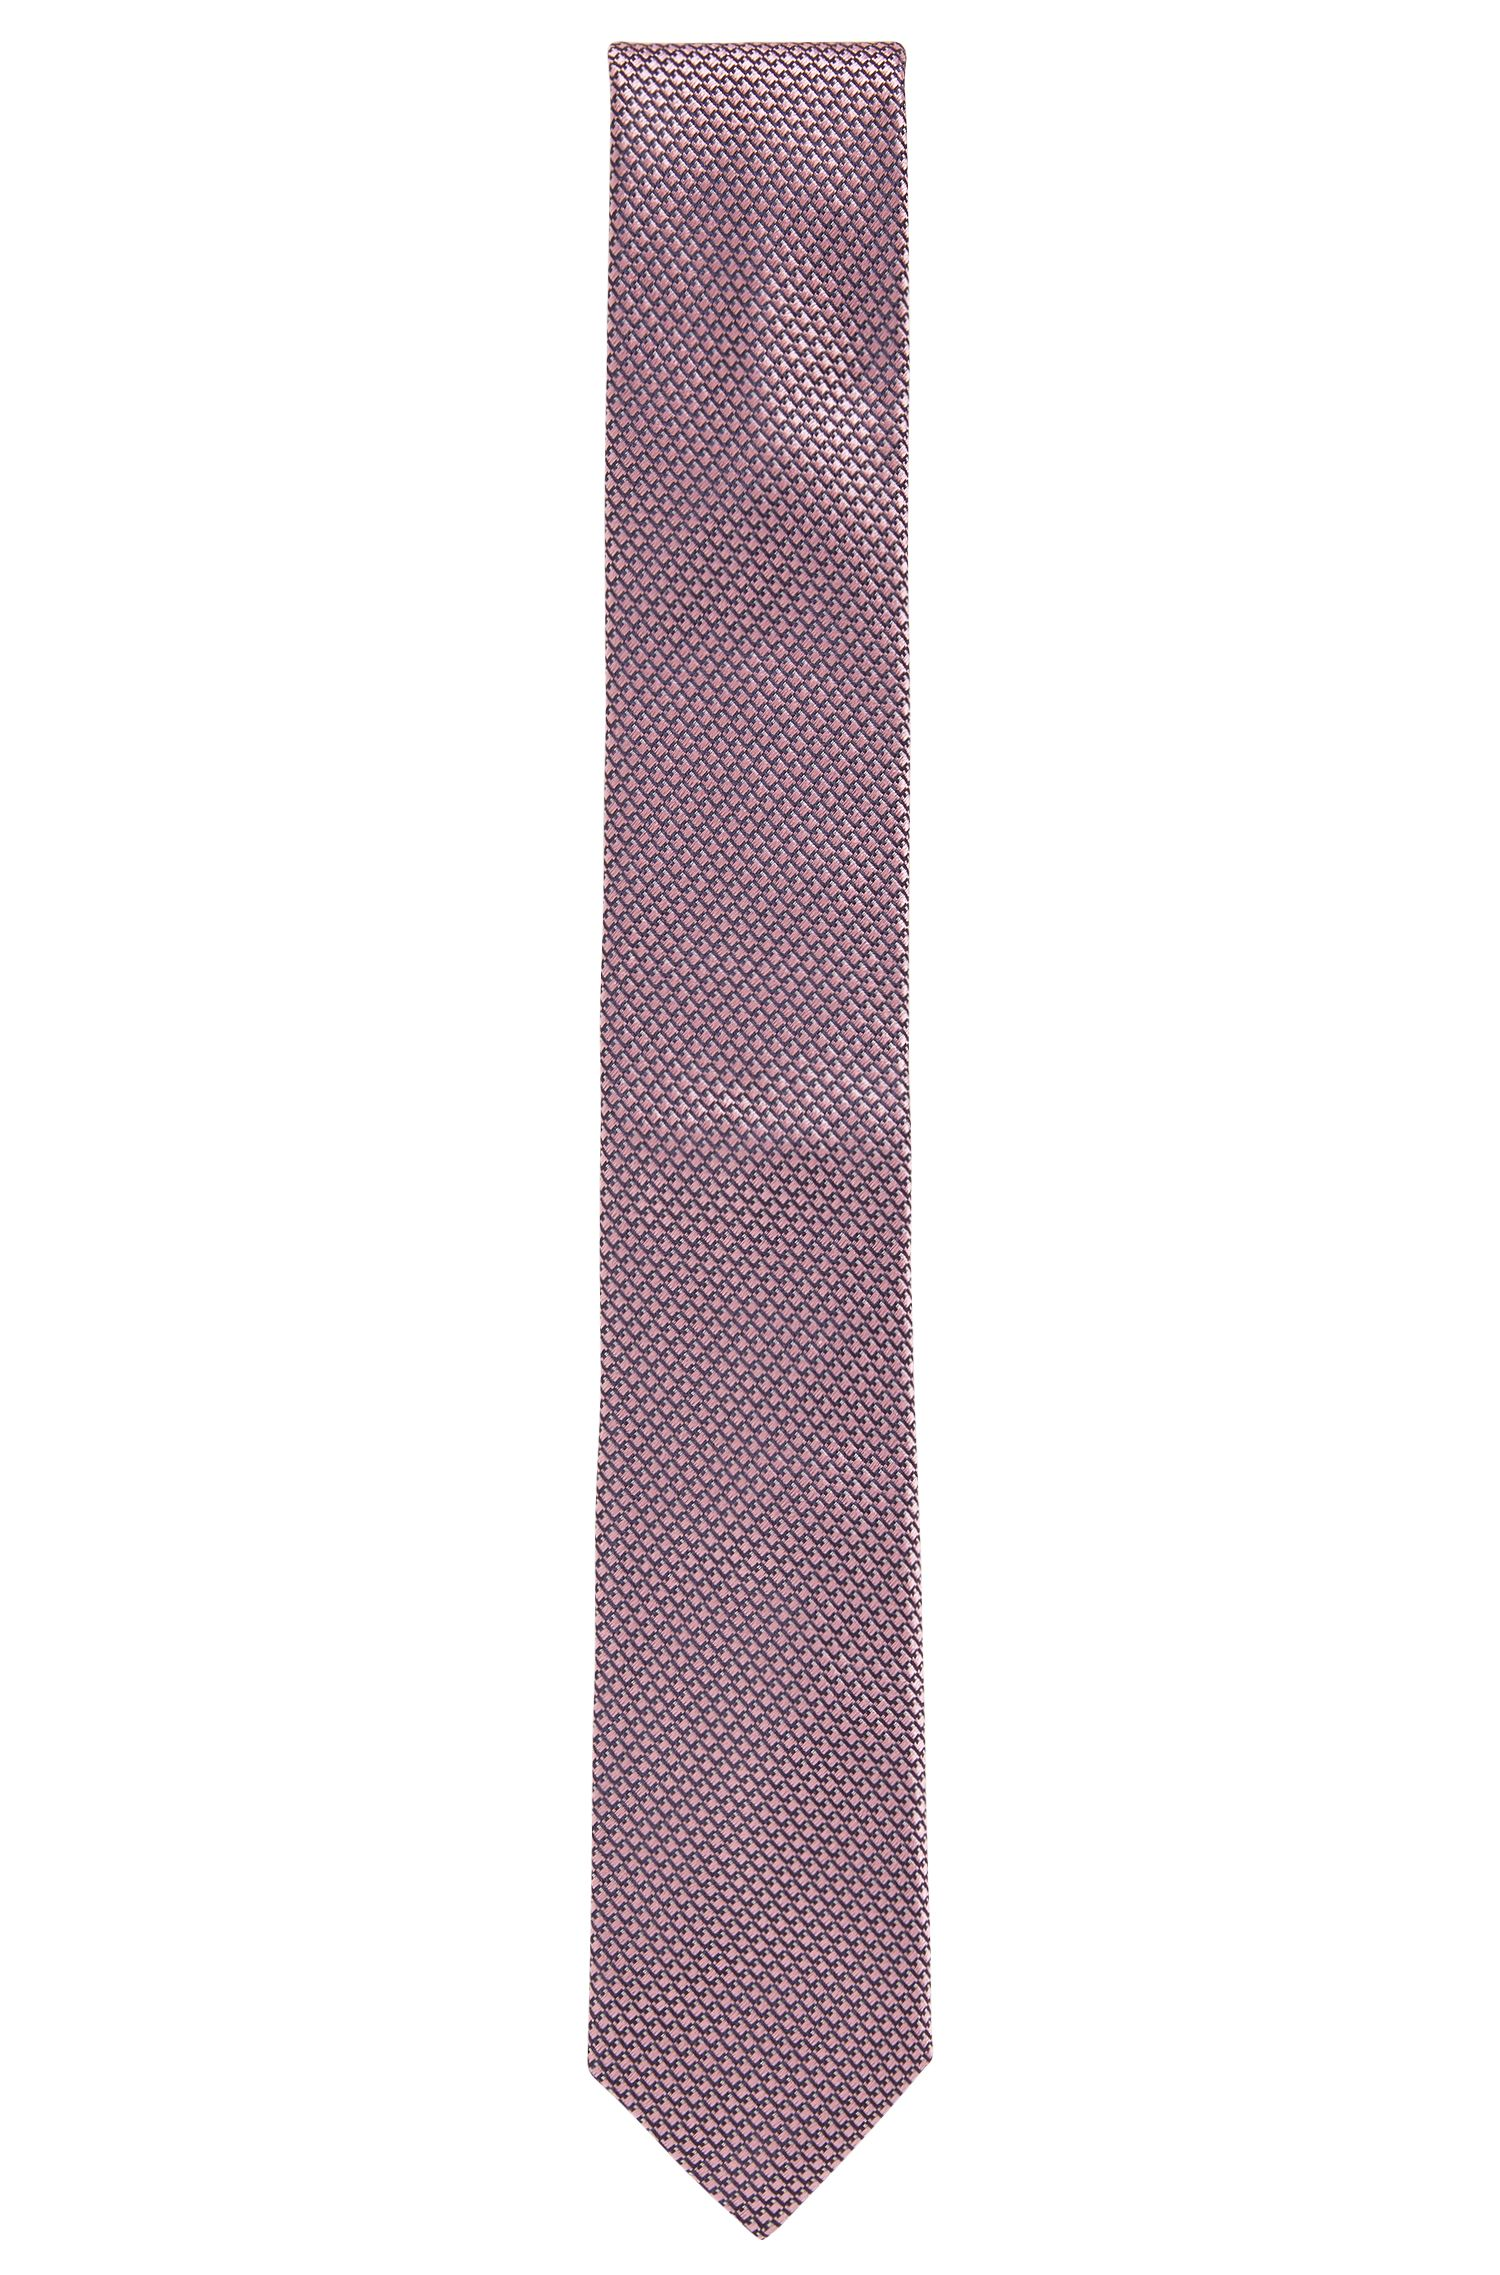 Italian-made patterned tie in pure silk, light pink